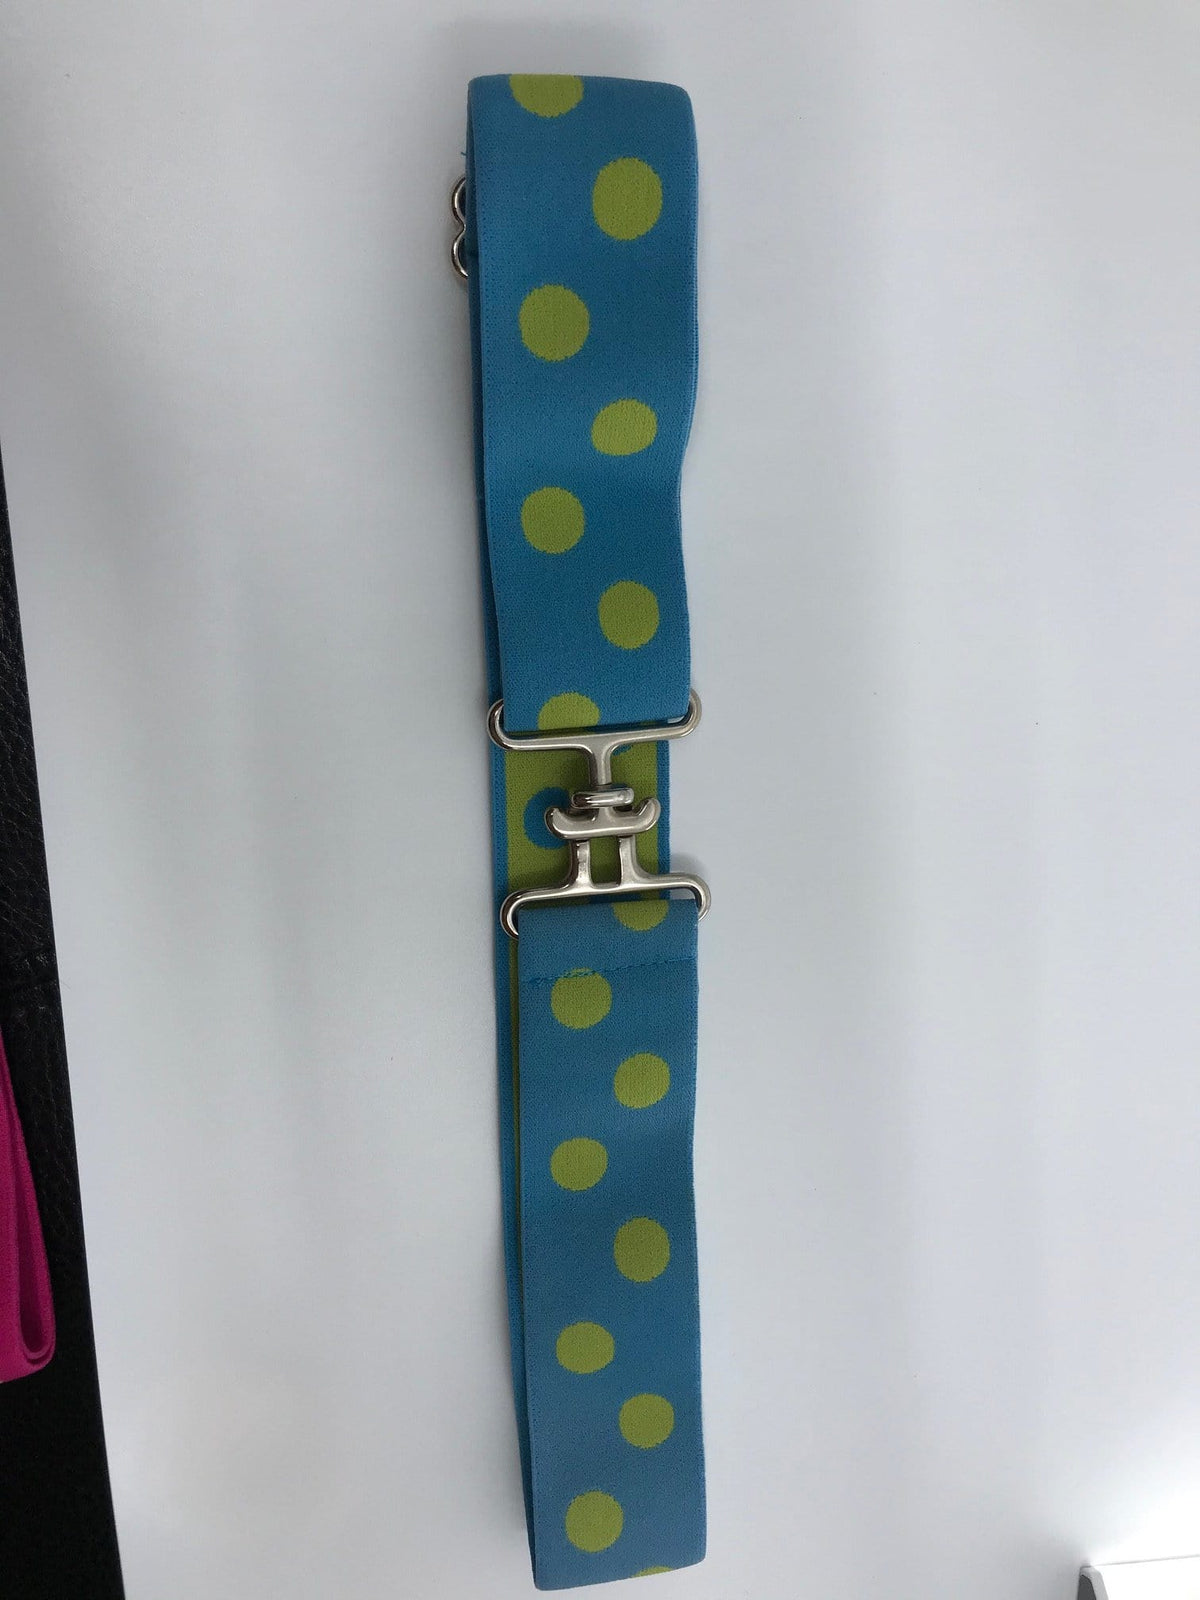 "Blue Ribbon Belts Belt Blue/ Lime Dots Blue Ribbon Belts 1.5"" equestrian team apparel online tack store mobile tack store custom farm apparel custom show stable clothing equestrian lifestyle horse show clothing riding clothes horses equestrian tack store"